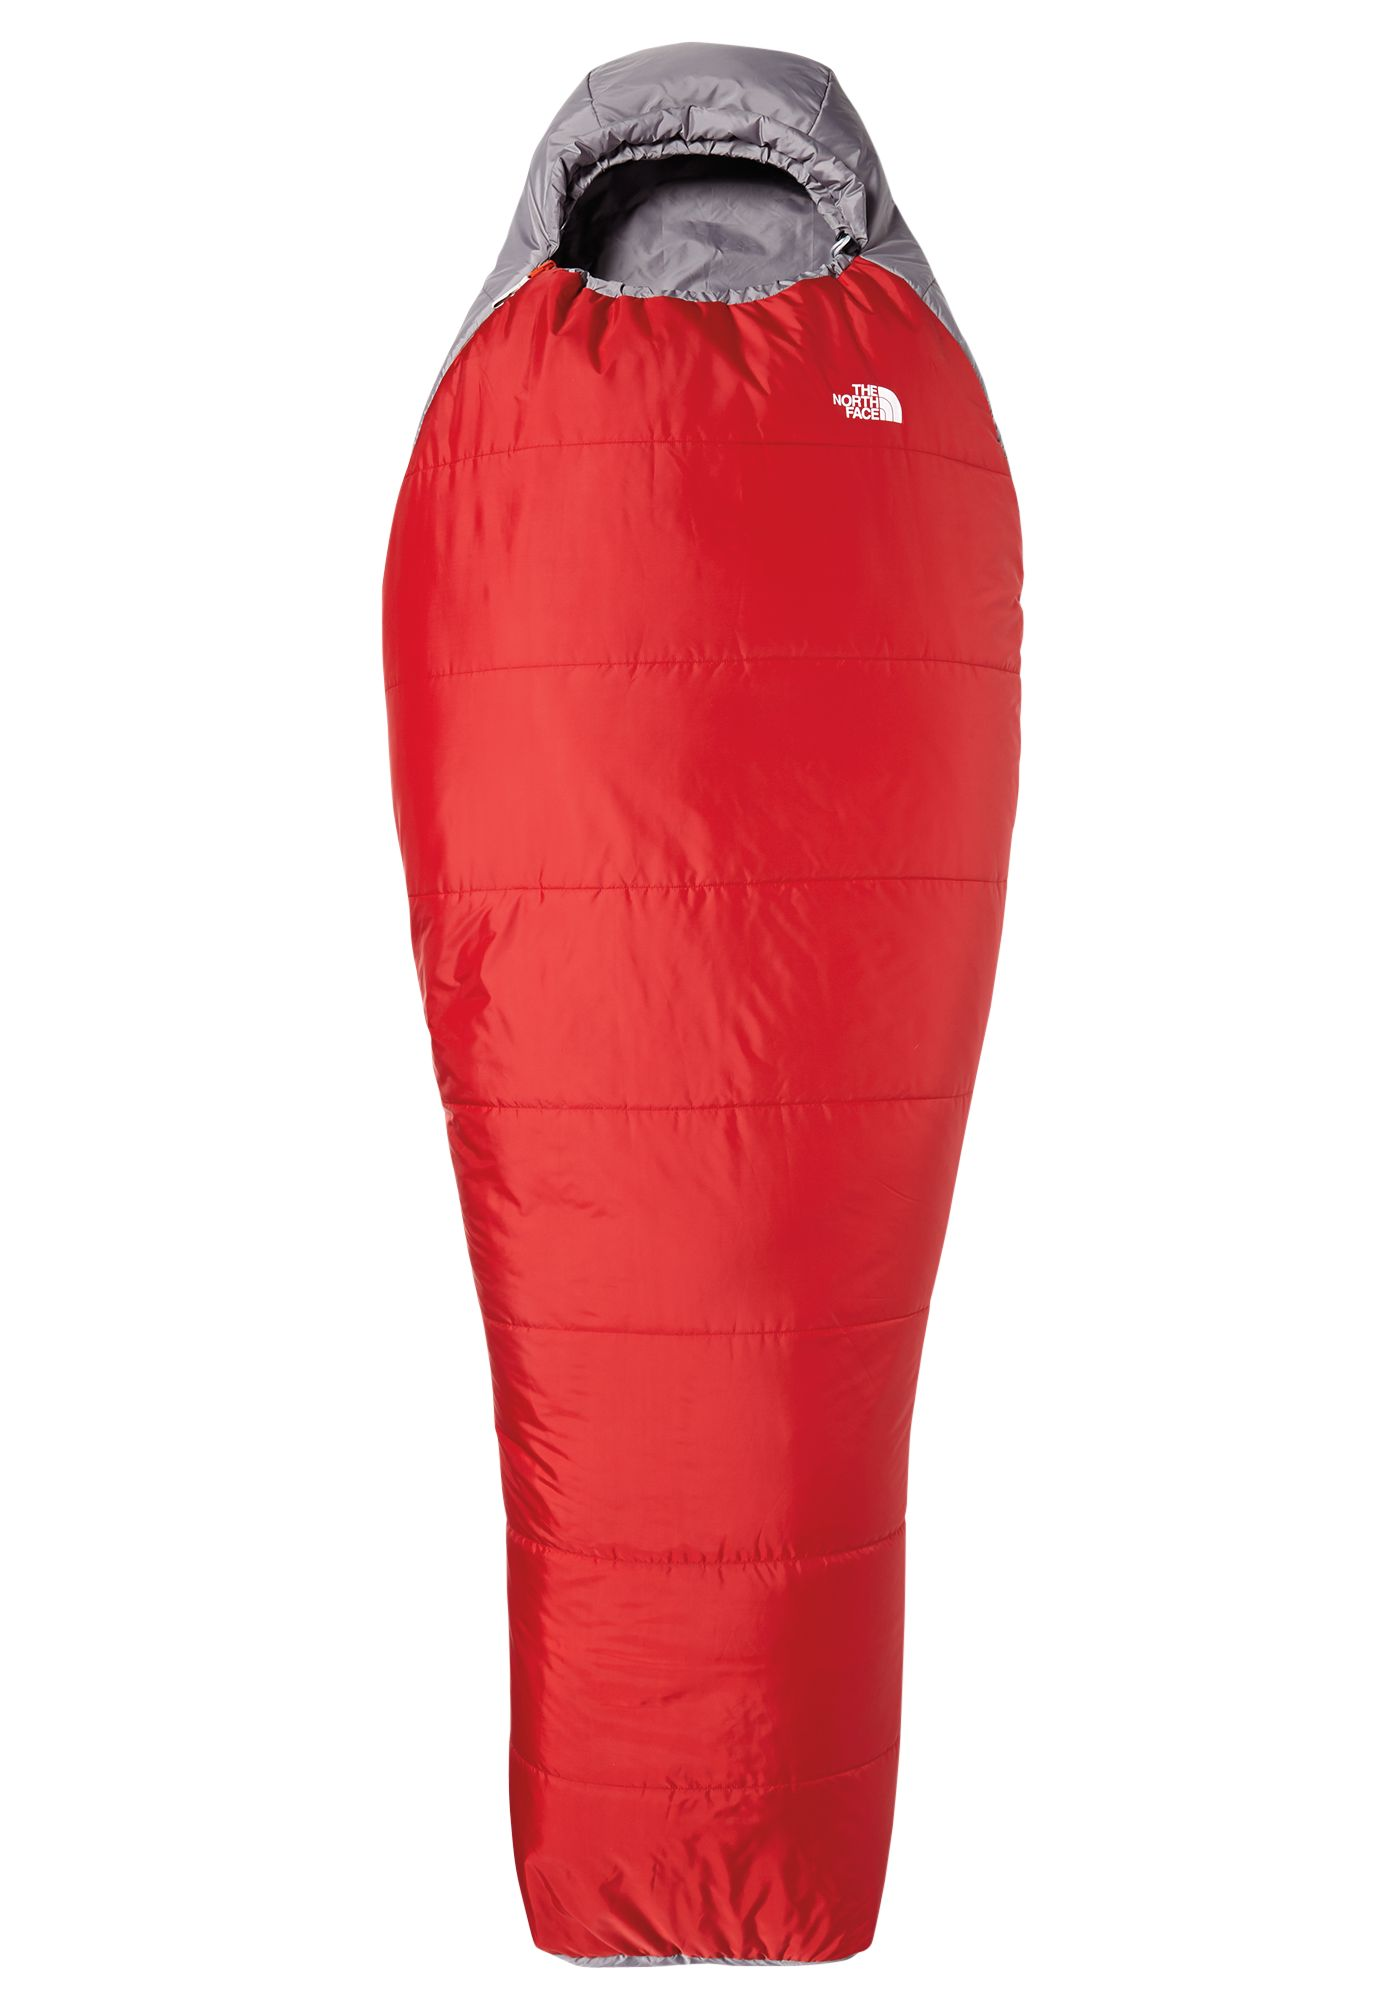 The North Face Wasatch 40° Sleeping Bag